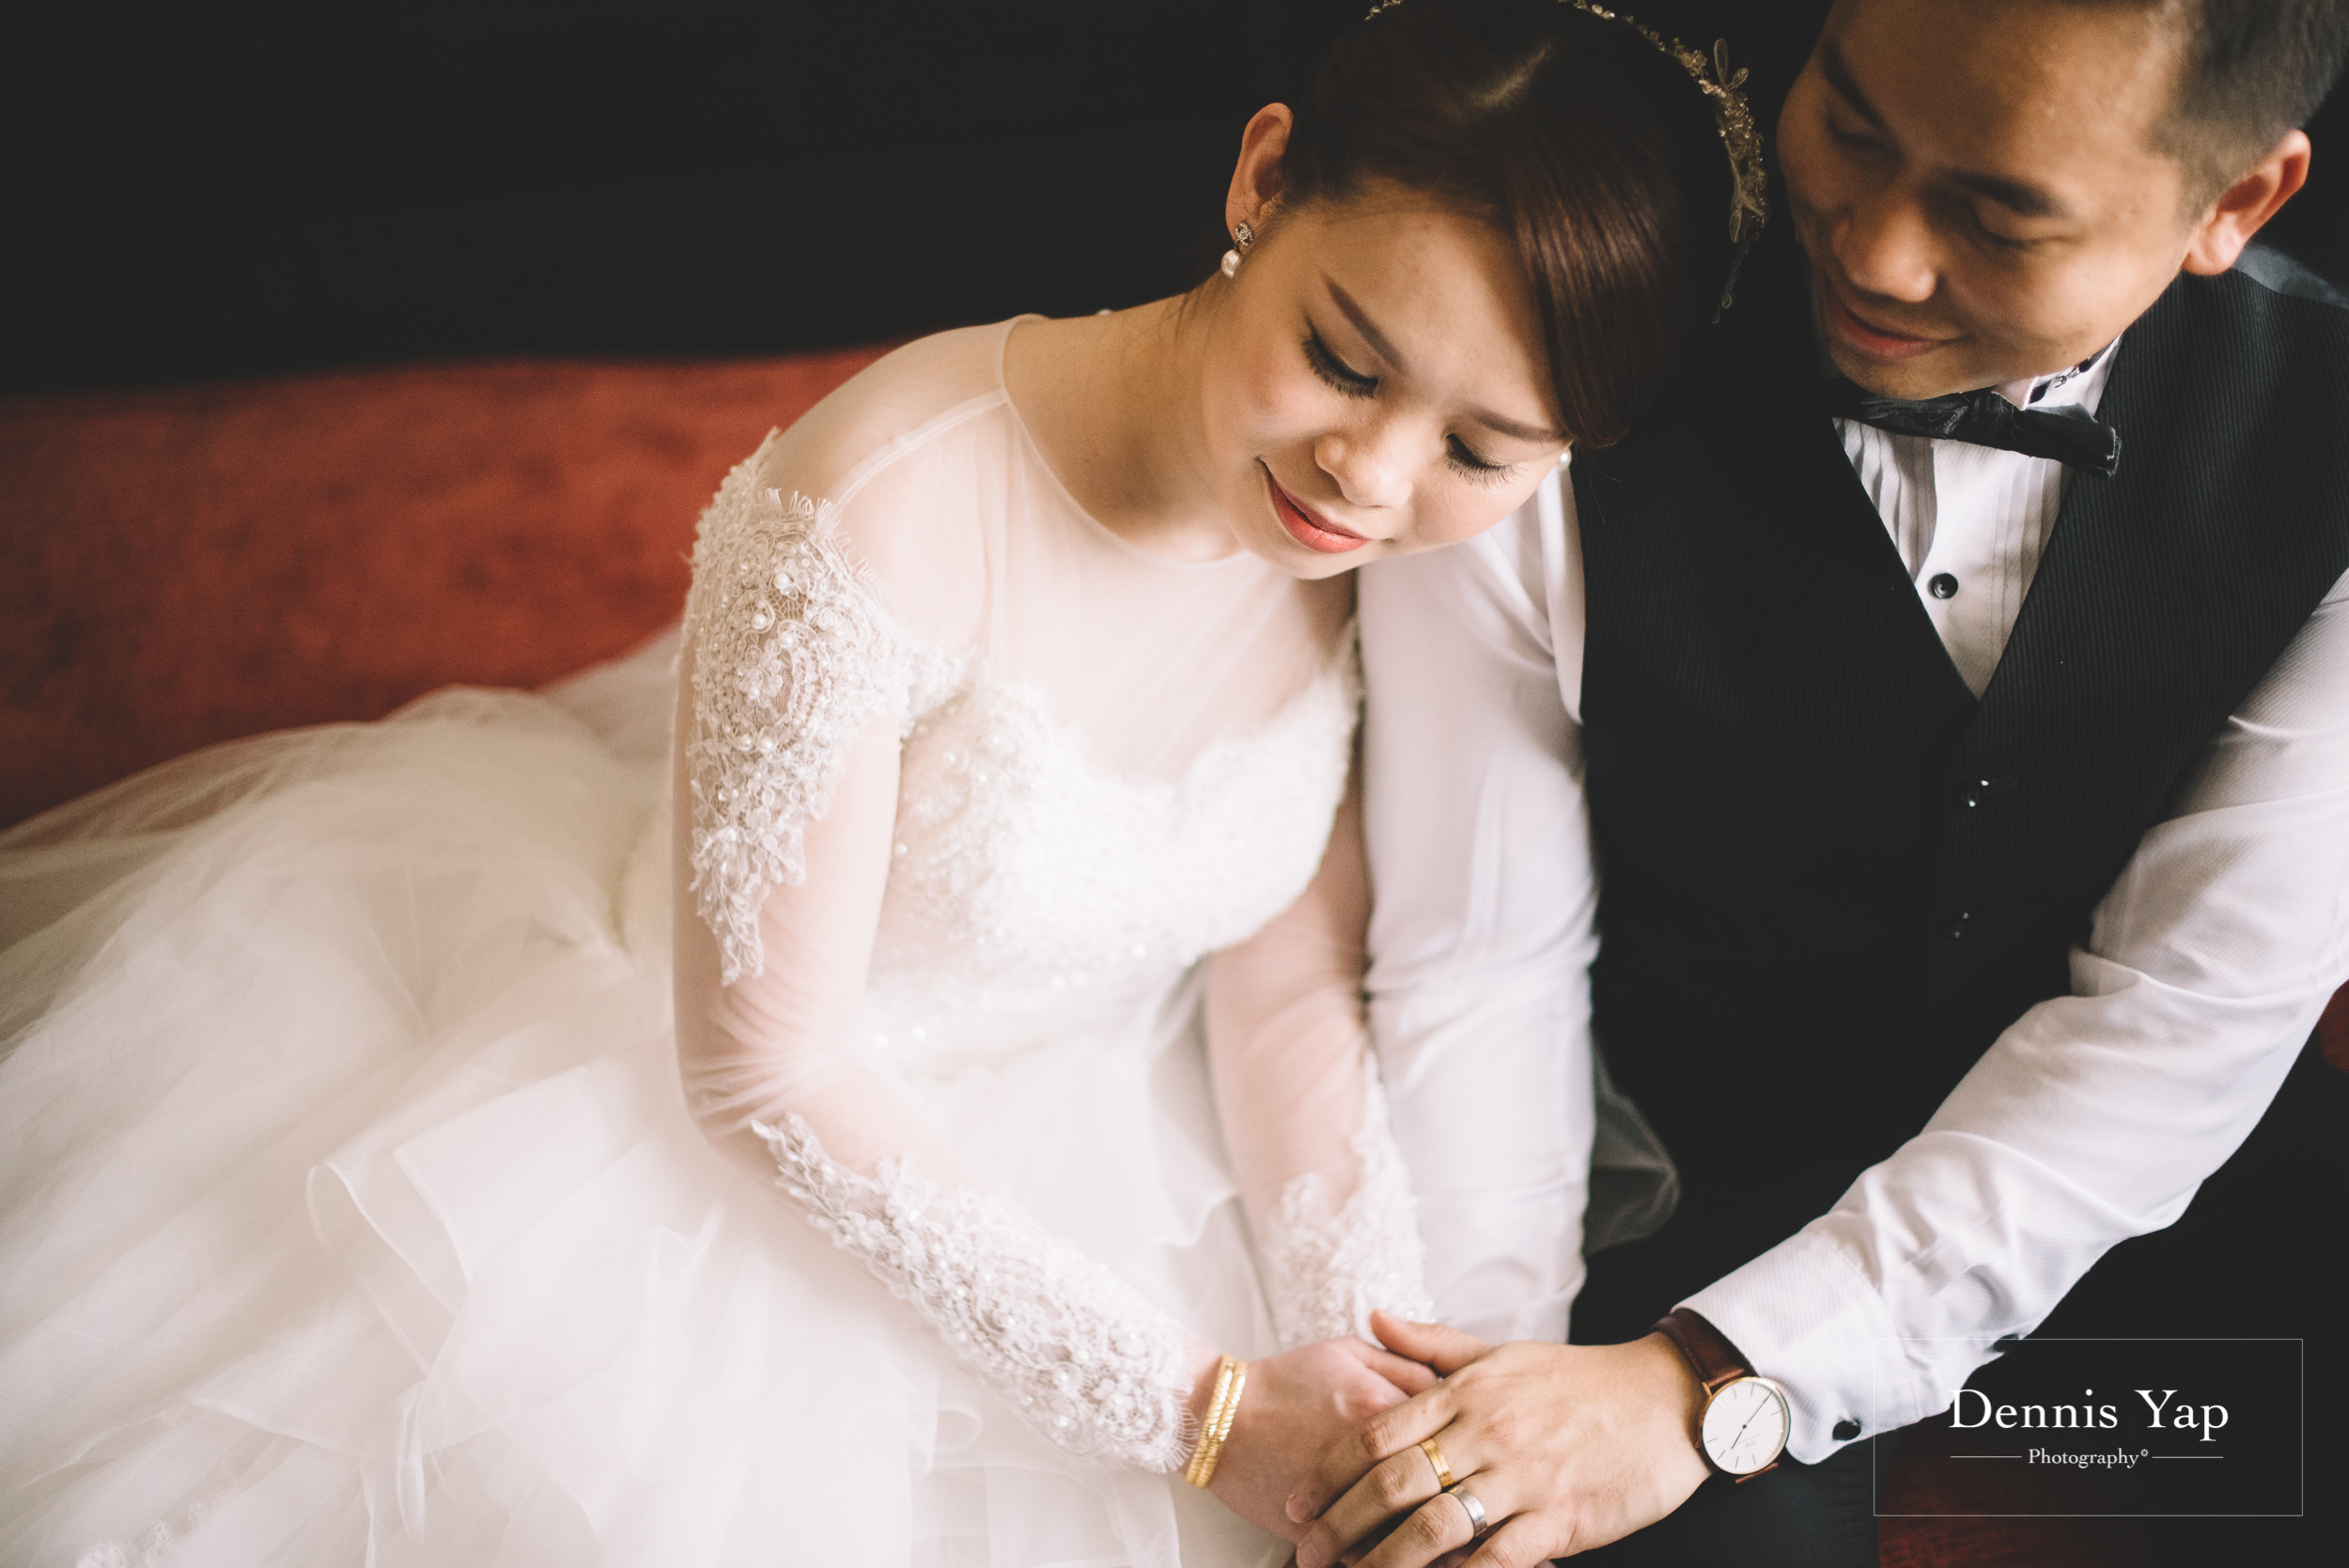 marcus emily wedding day gift exchange malaysia dennis yap photography-20.jpg